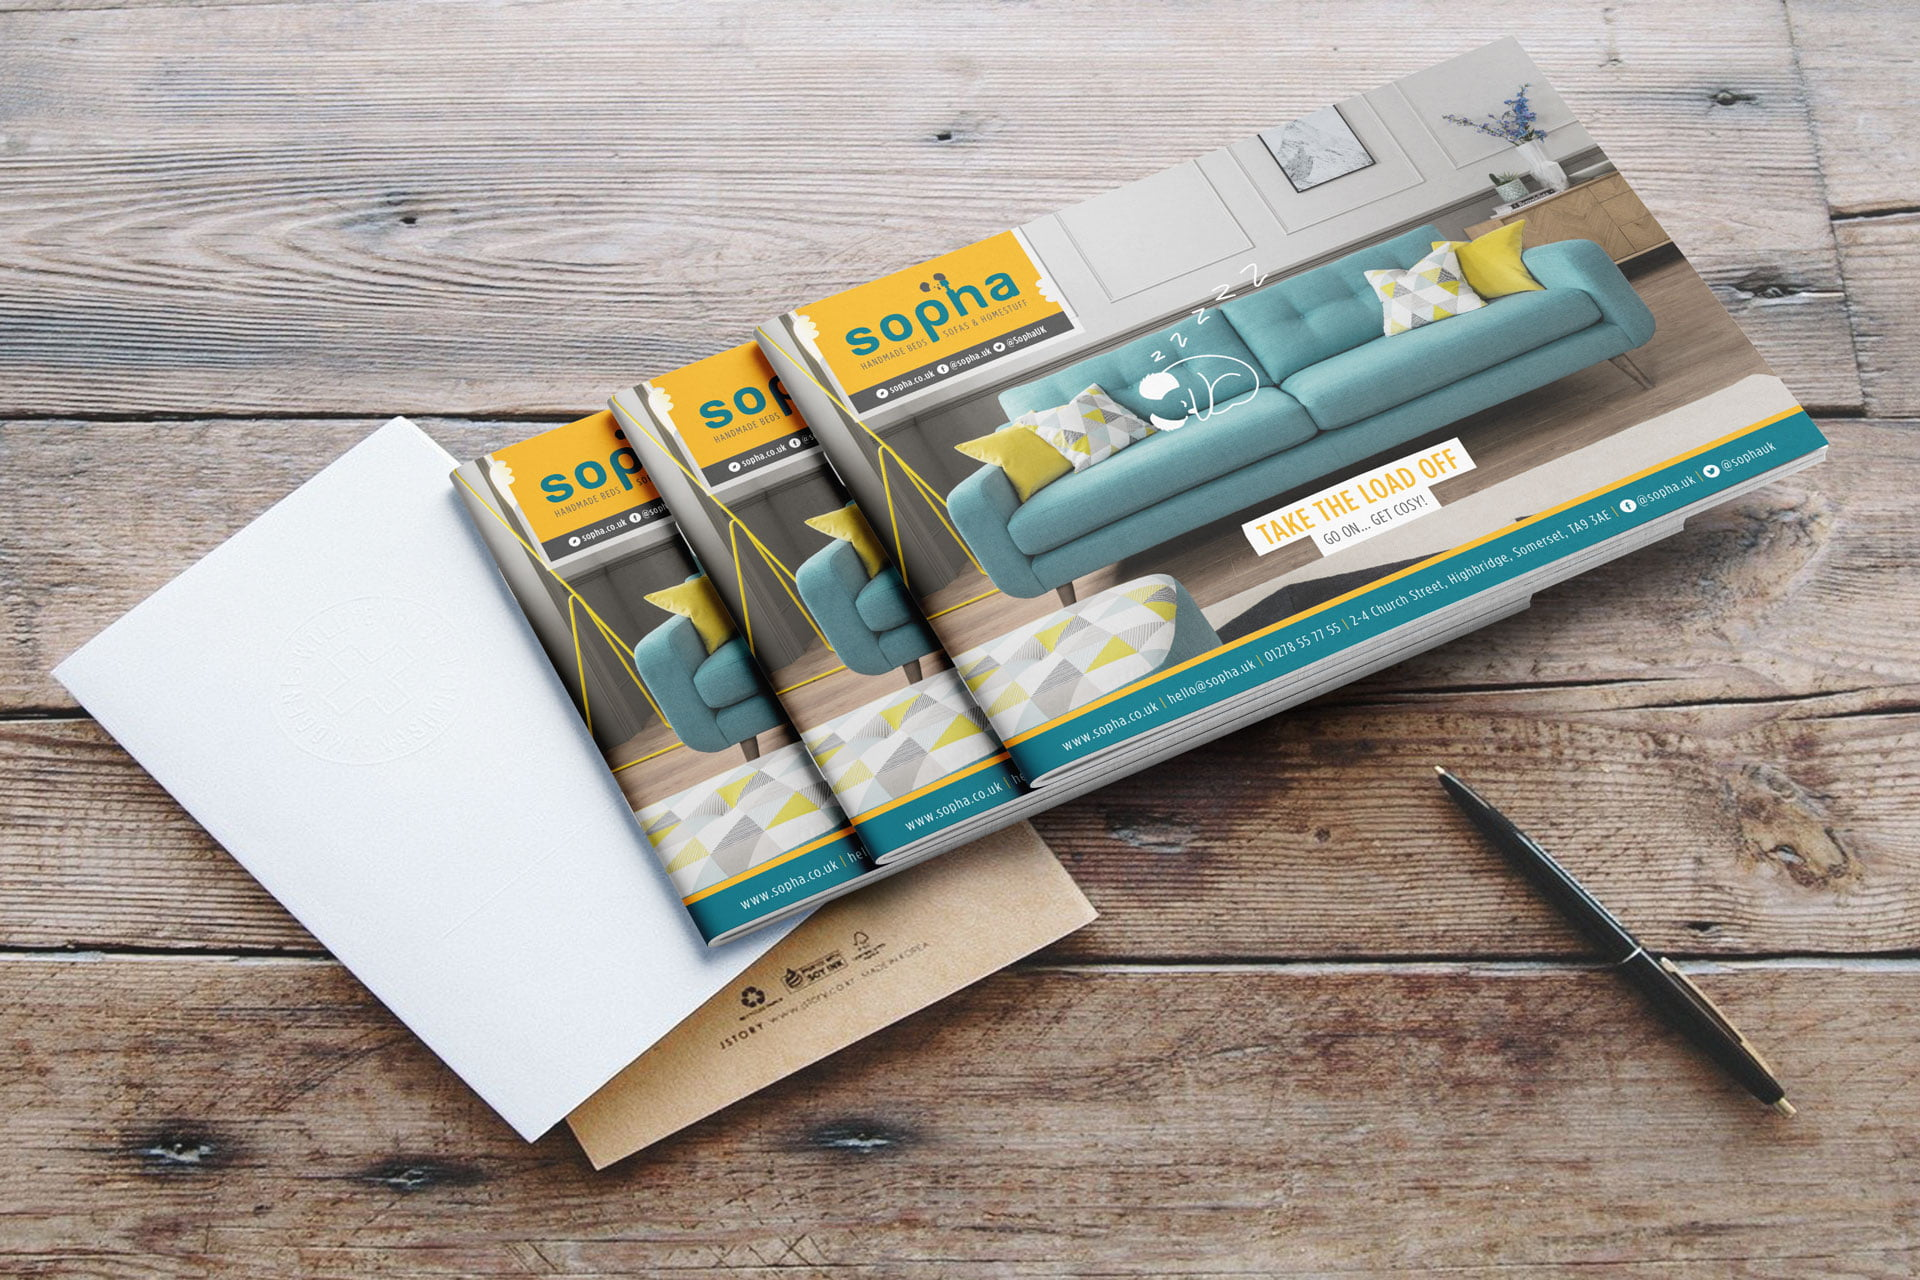 Sopha-furniture-brand-brochure-highbridge The Importance of Branding & Graphic Design in a Business